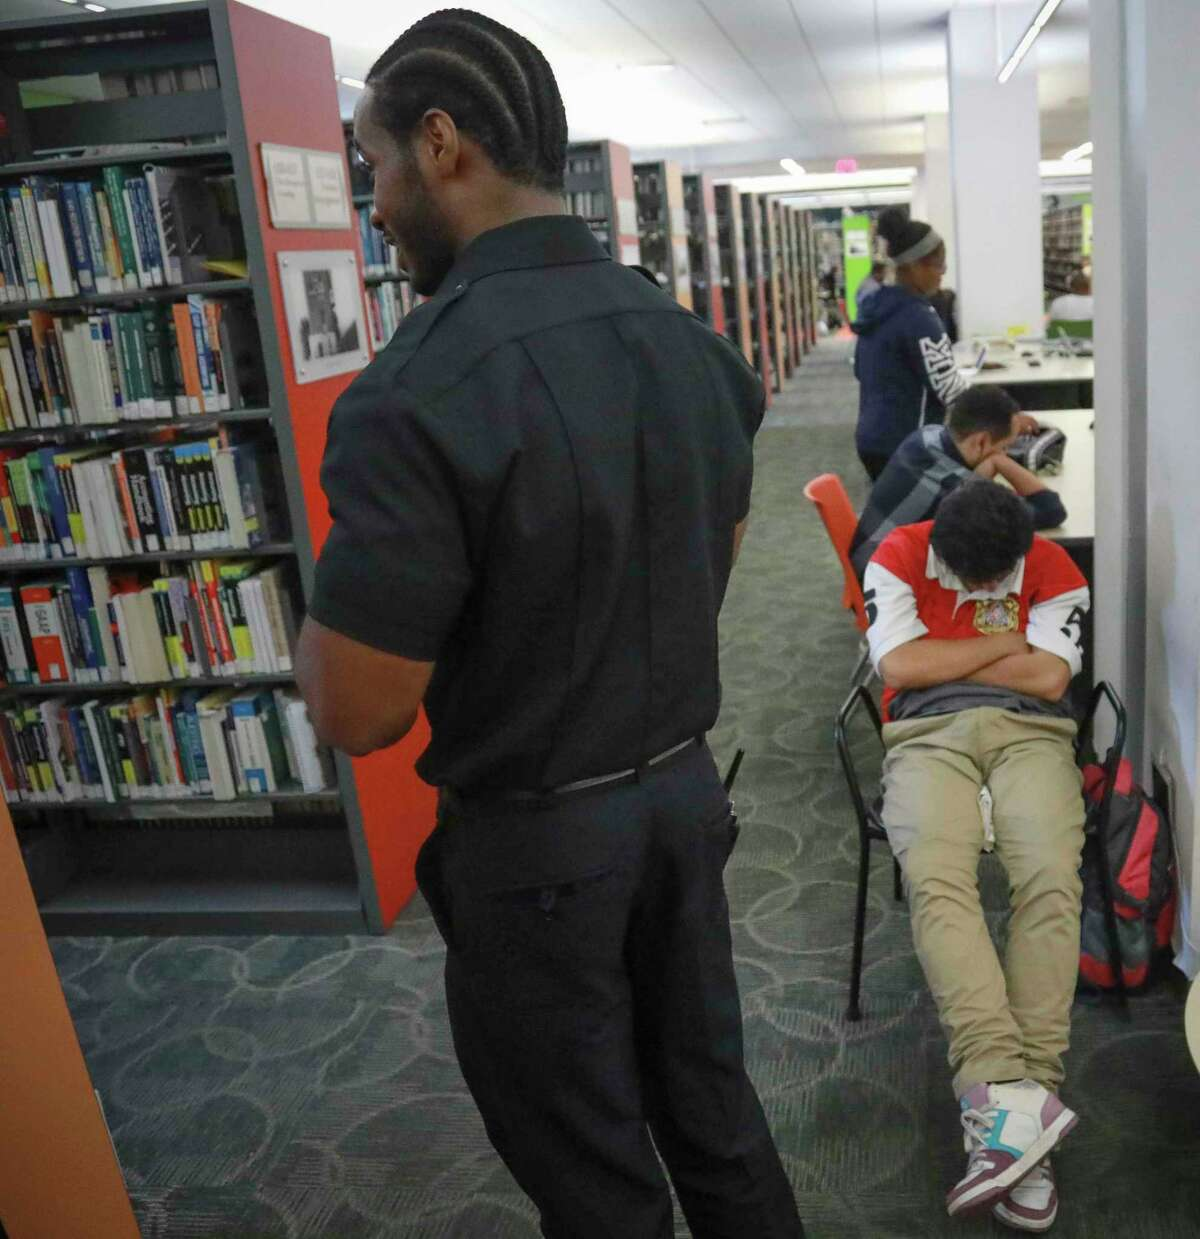 Security guard Reginald Rudolph, left, makes his rounds at Queens Central Library, Monday July 29, 2019, in Queens borough of New York. Security personnel often become frontline contact between patrons and library social workers.